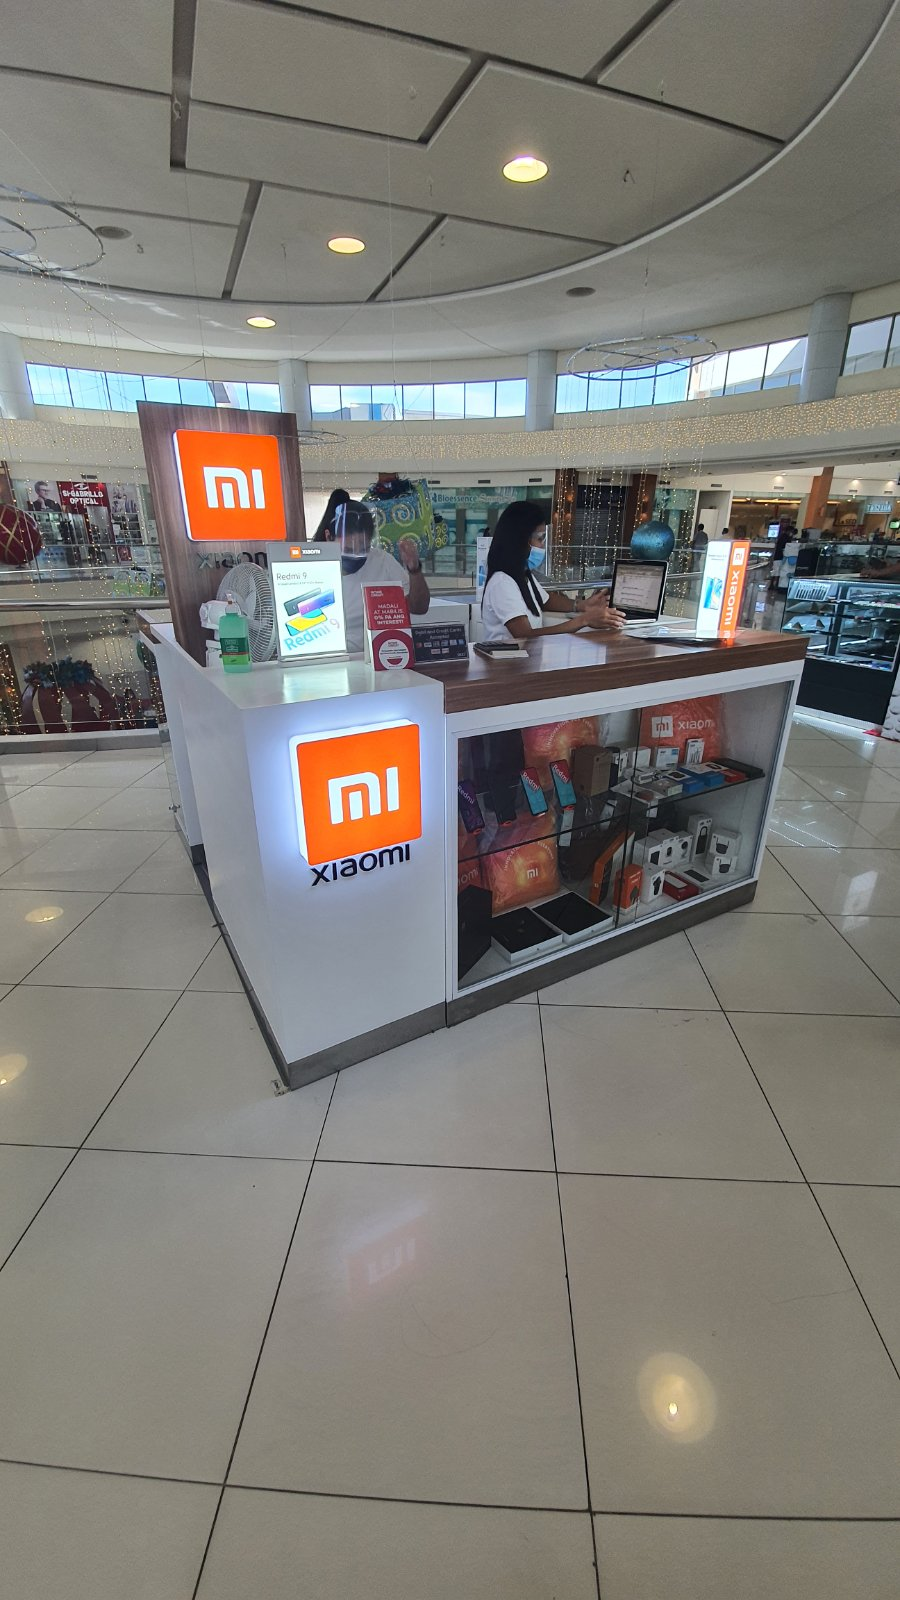 More Xiaomi Kiosk Pops Up Before We End 2020, More Options for Last Minute Shopping Near You!